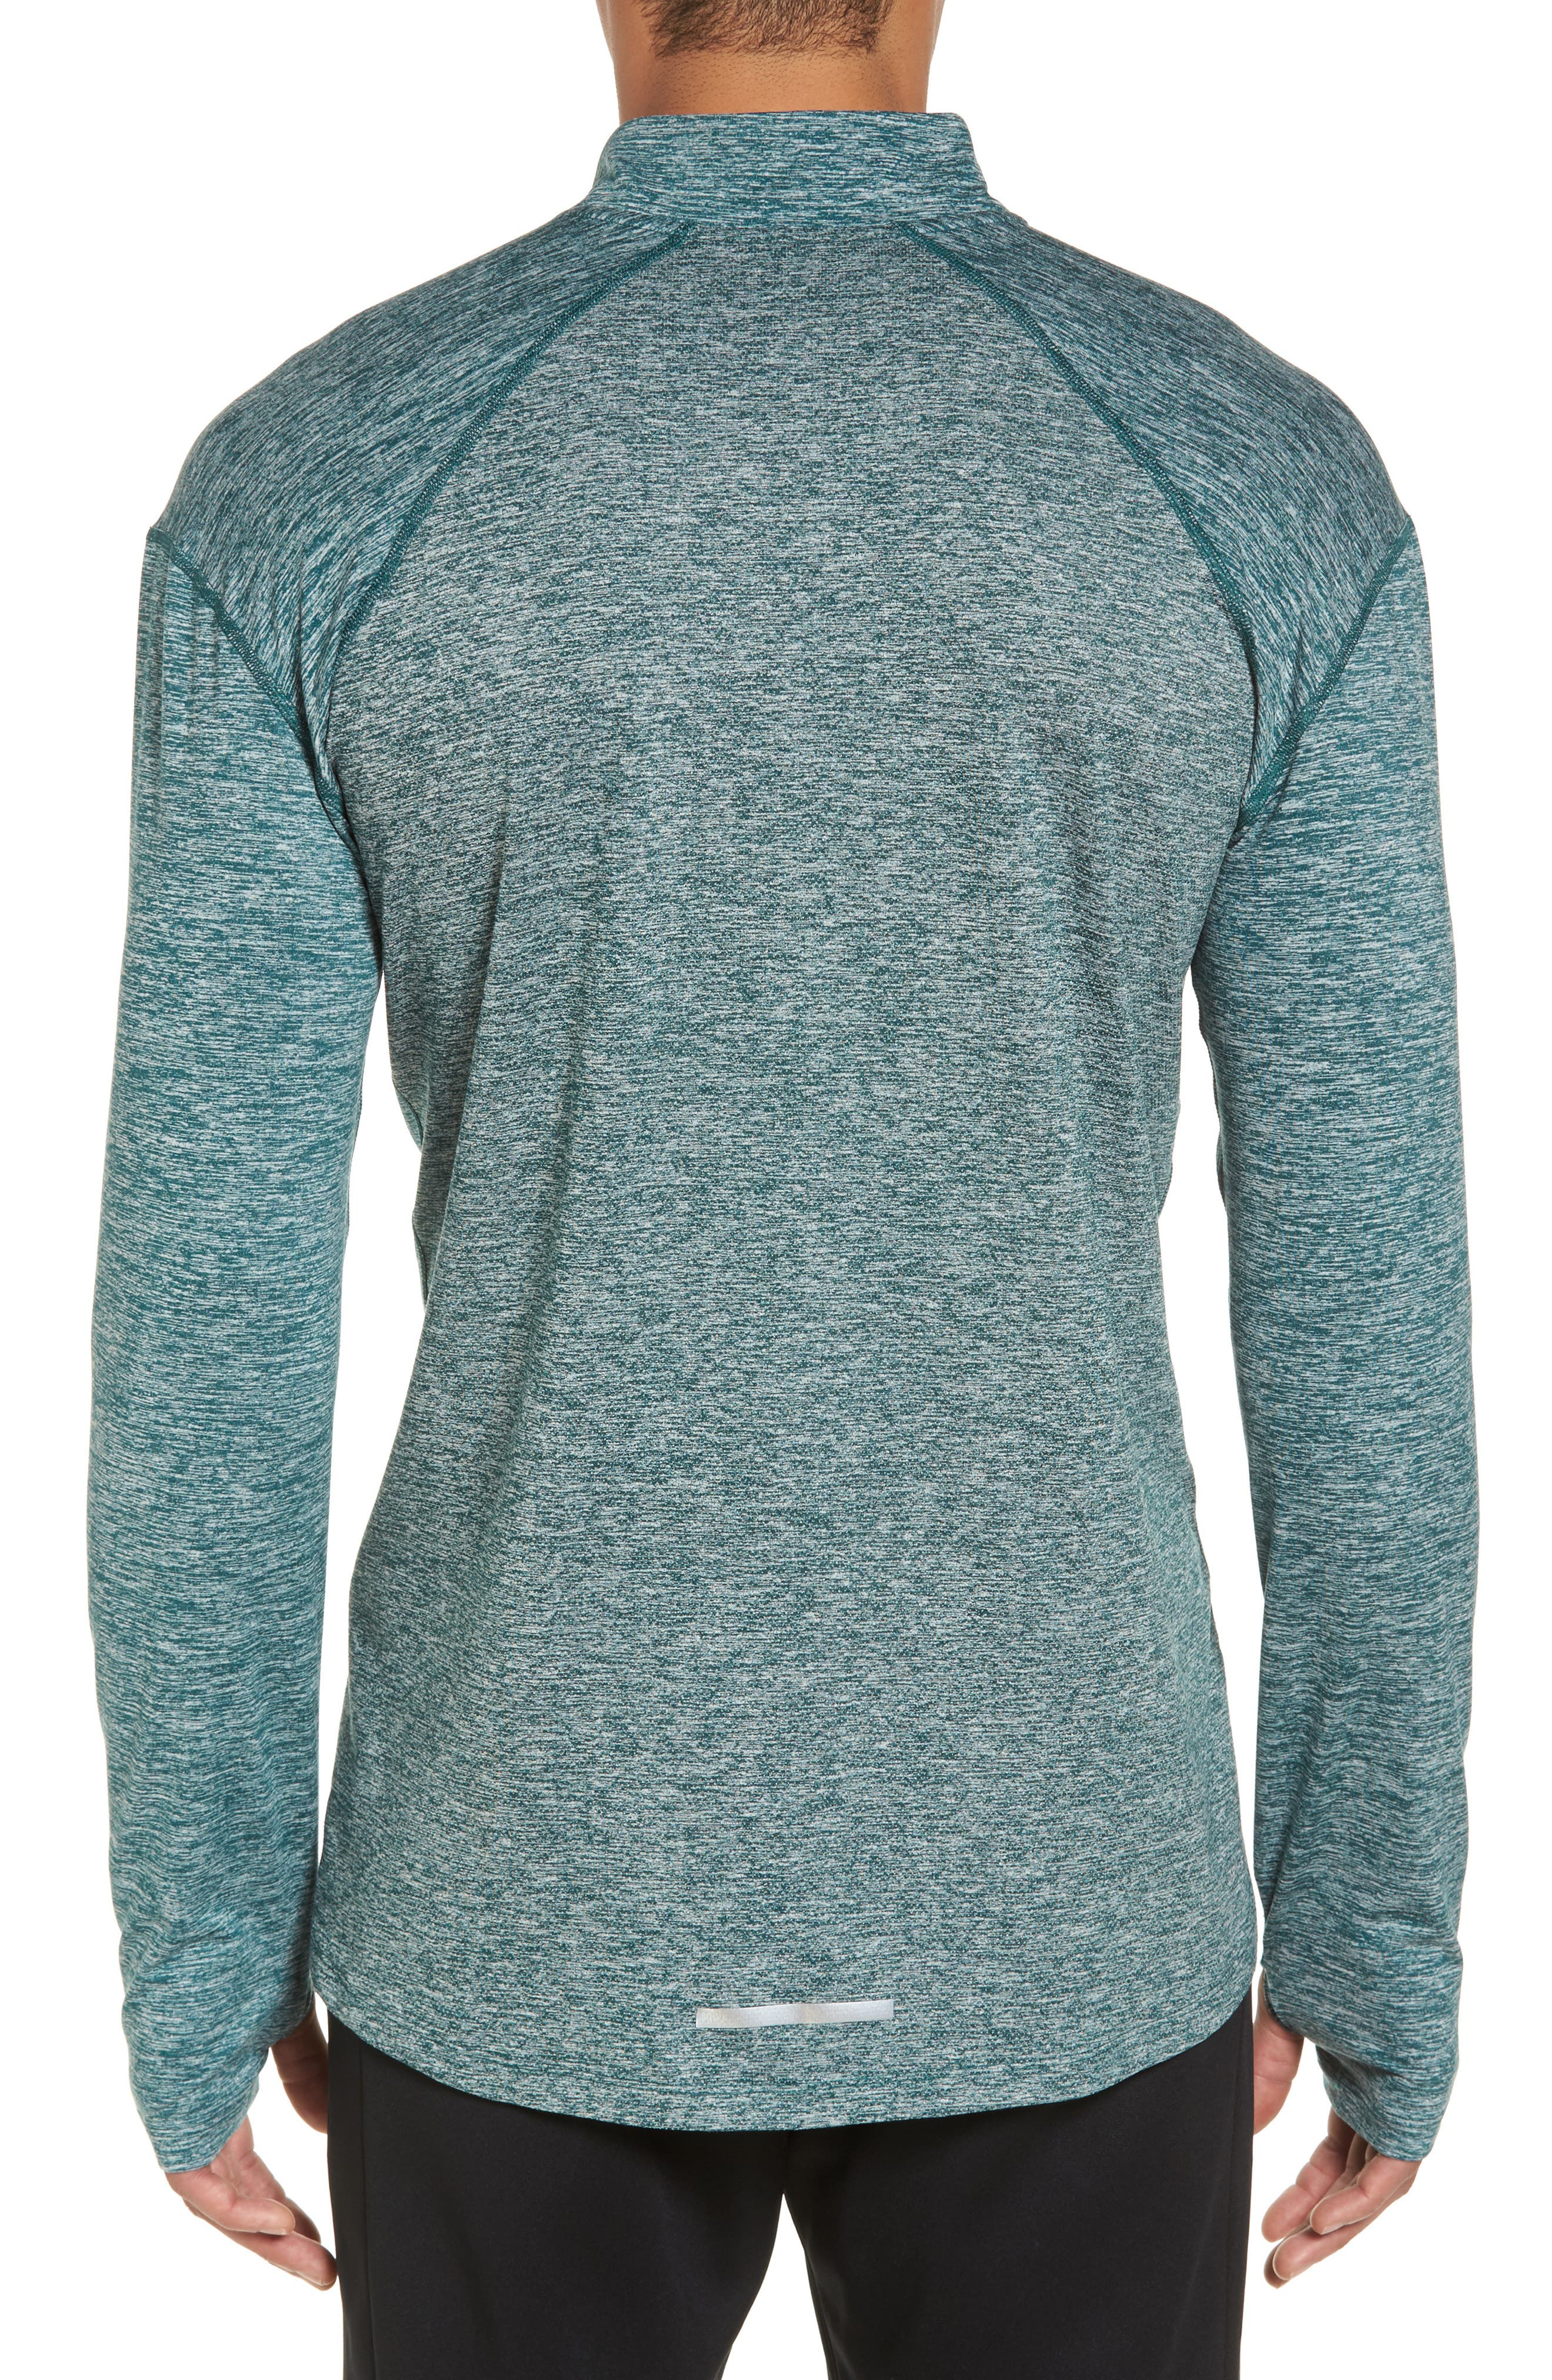 Dry Element Running Top,                             Alternate thumbnail 13, color,